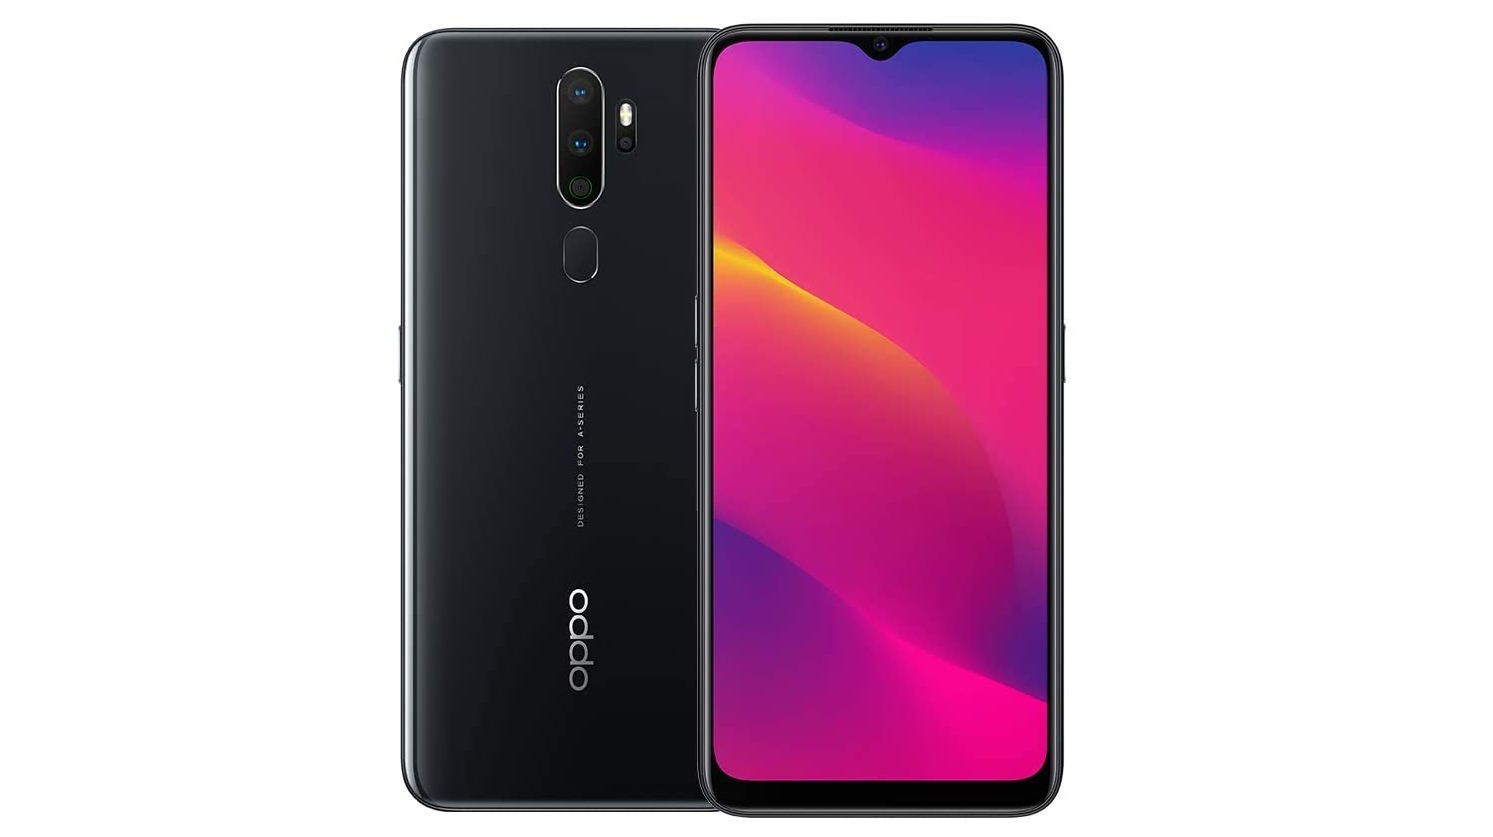 An Oppo A5 2020 against a white background